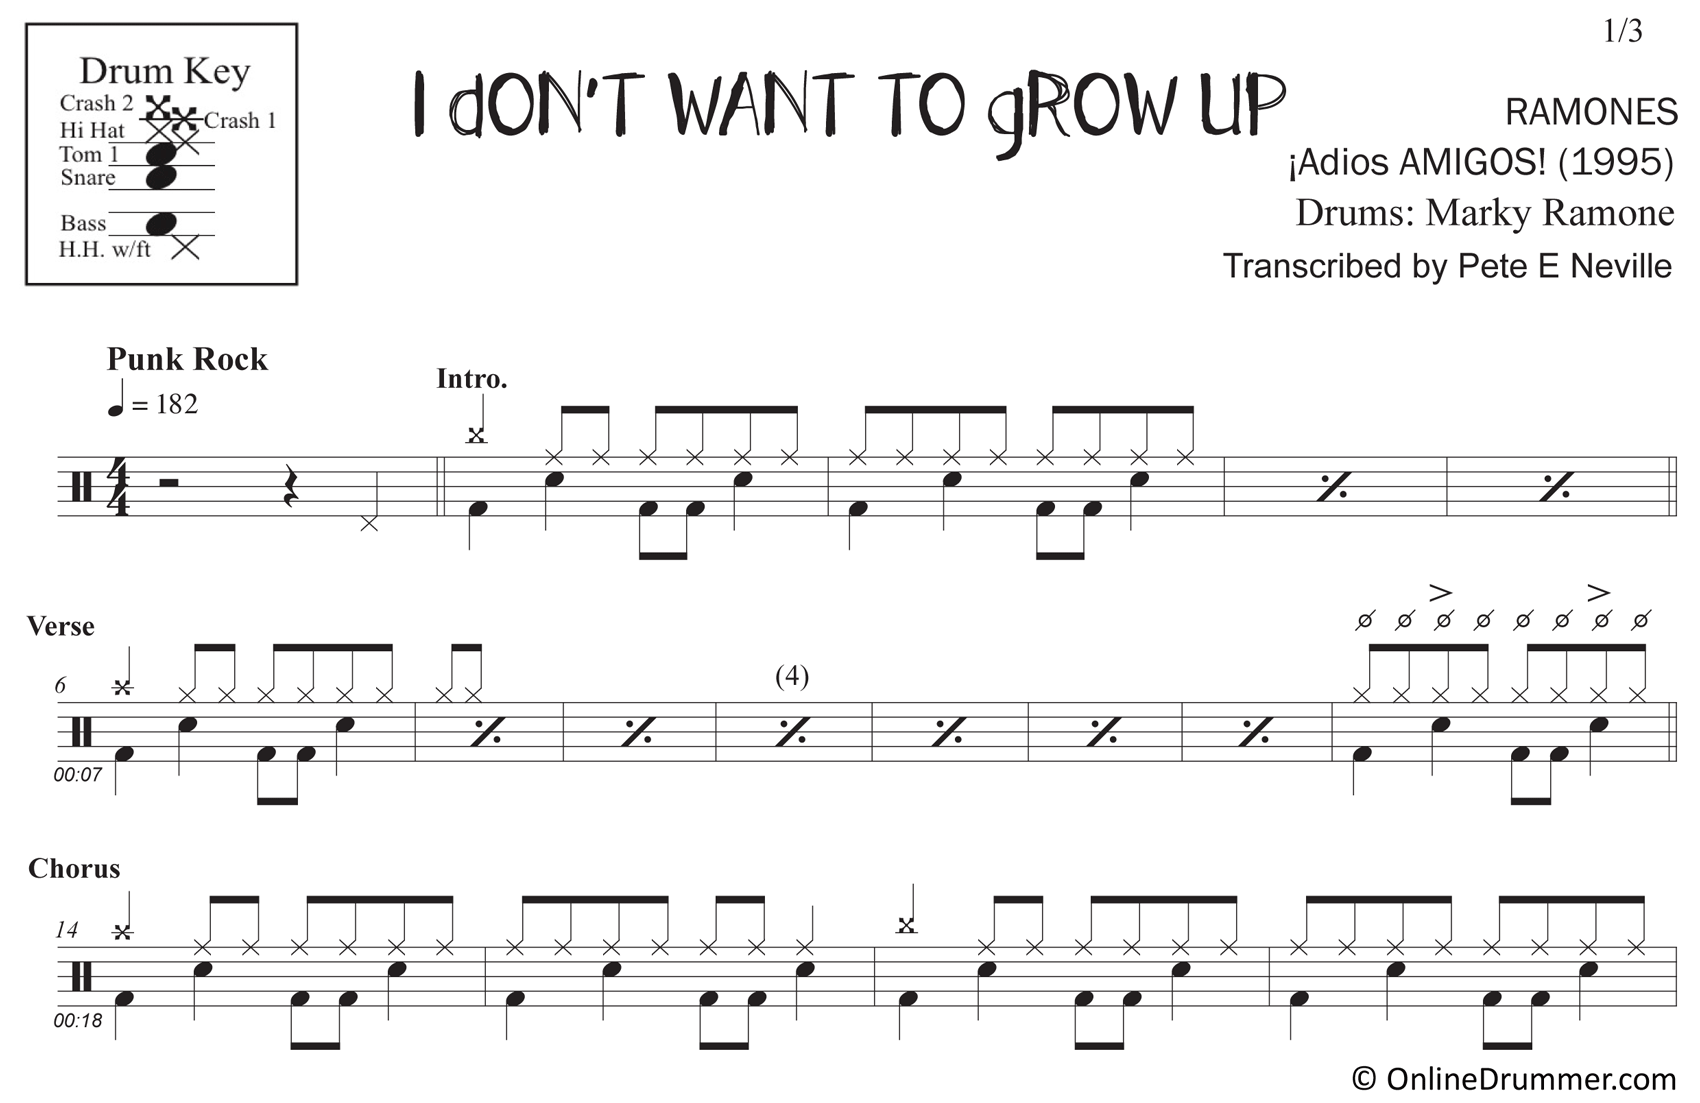 I Don't Want To Grow Up - Ramones - Drum Sheet Music